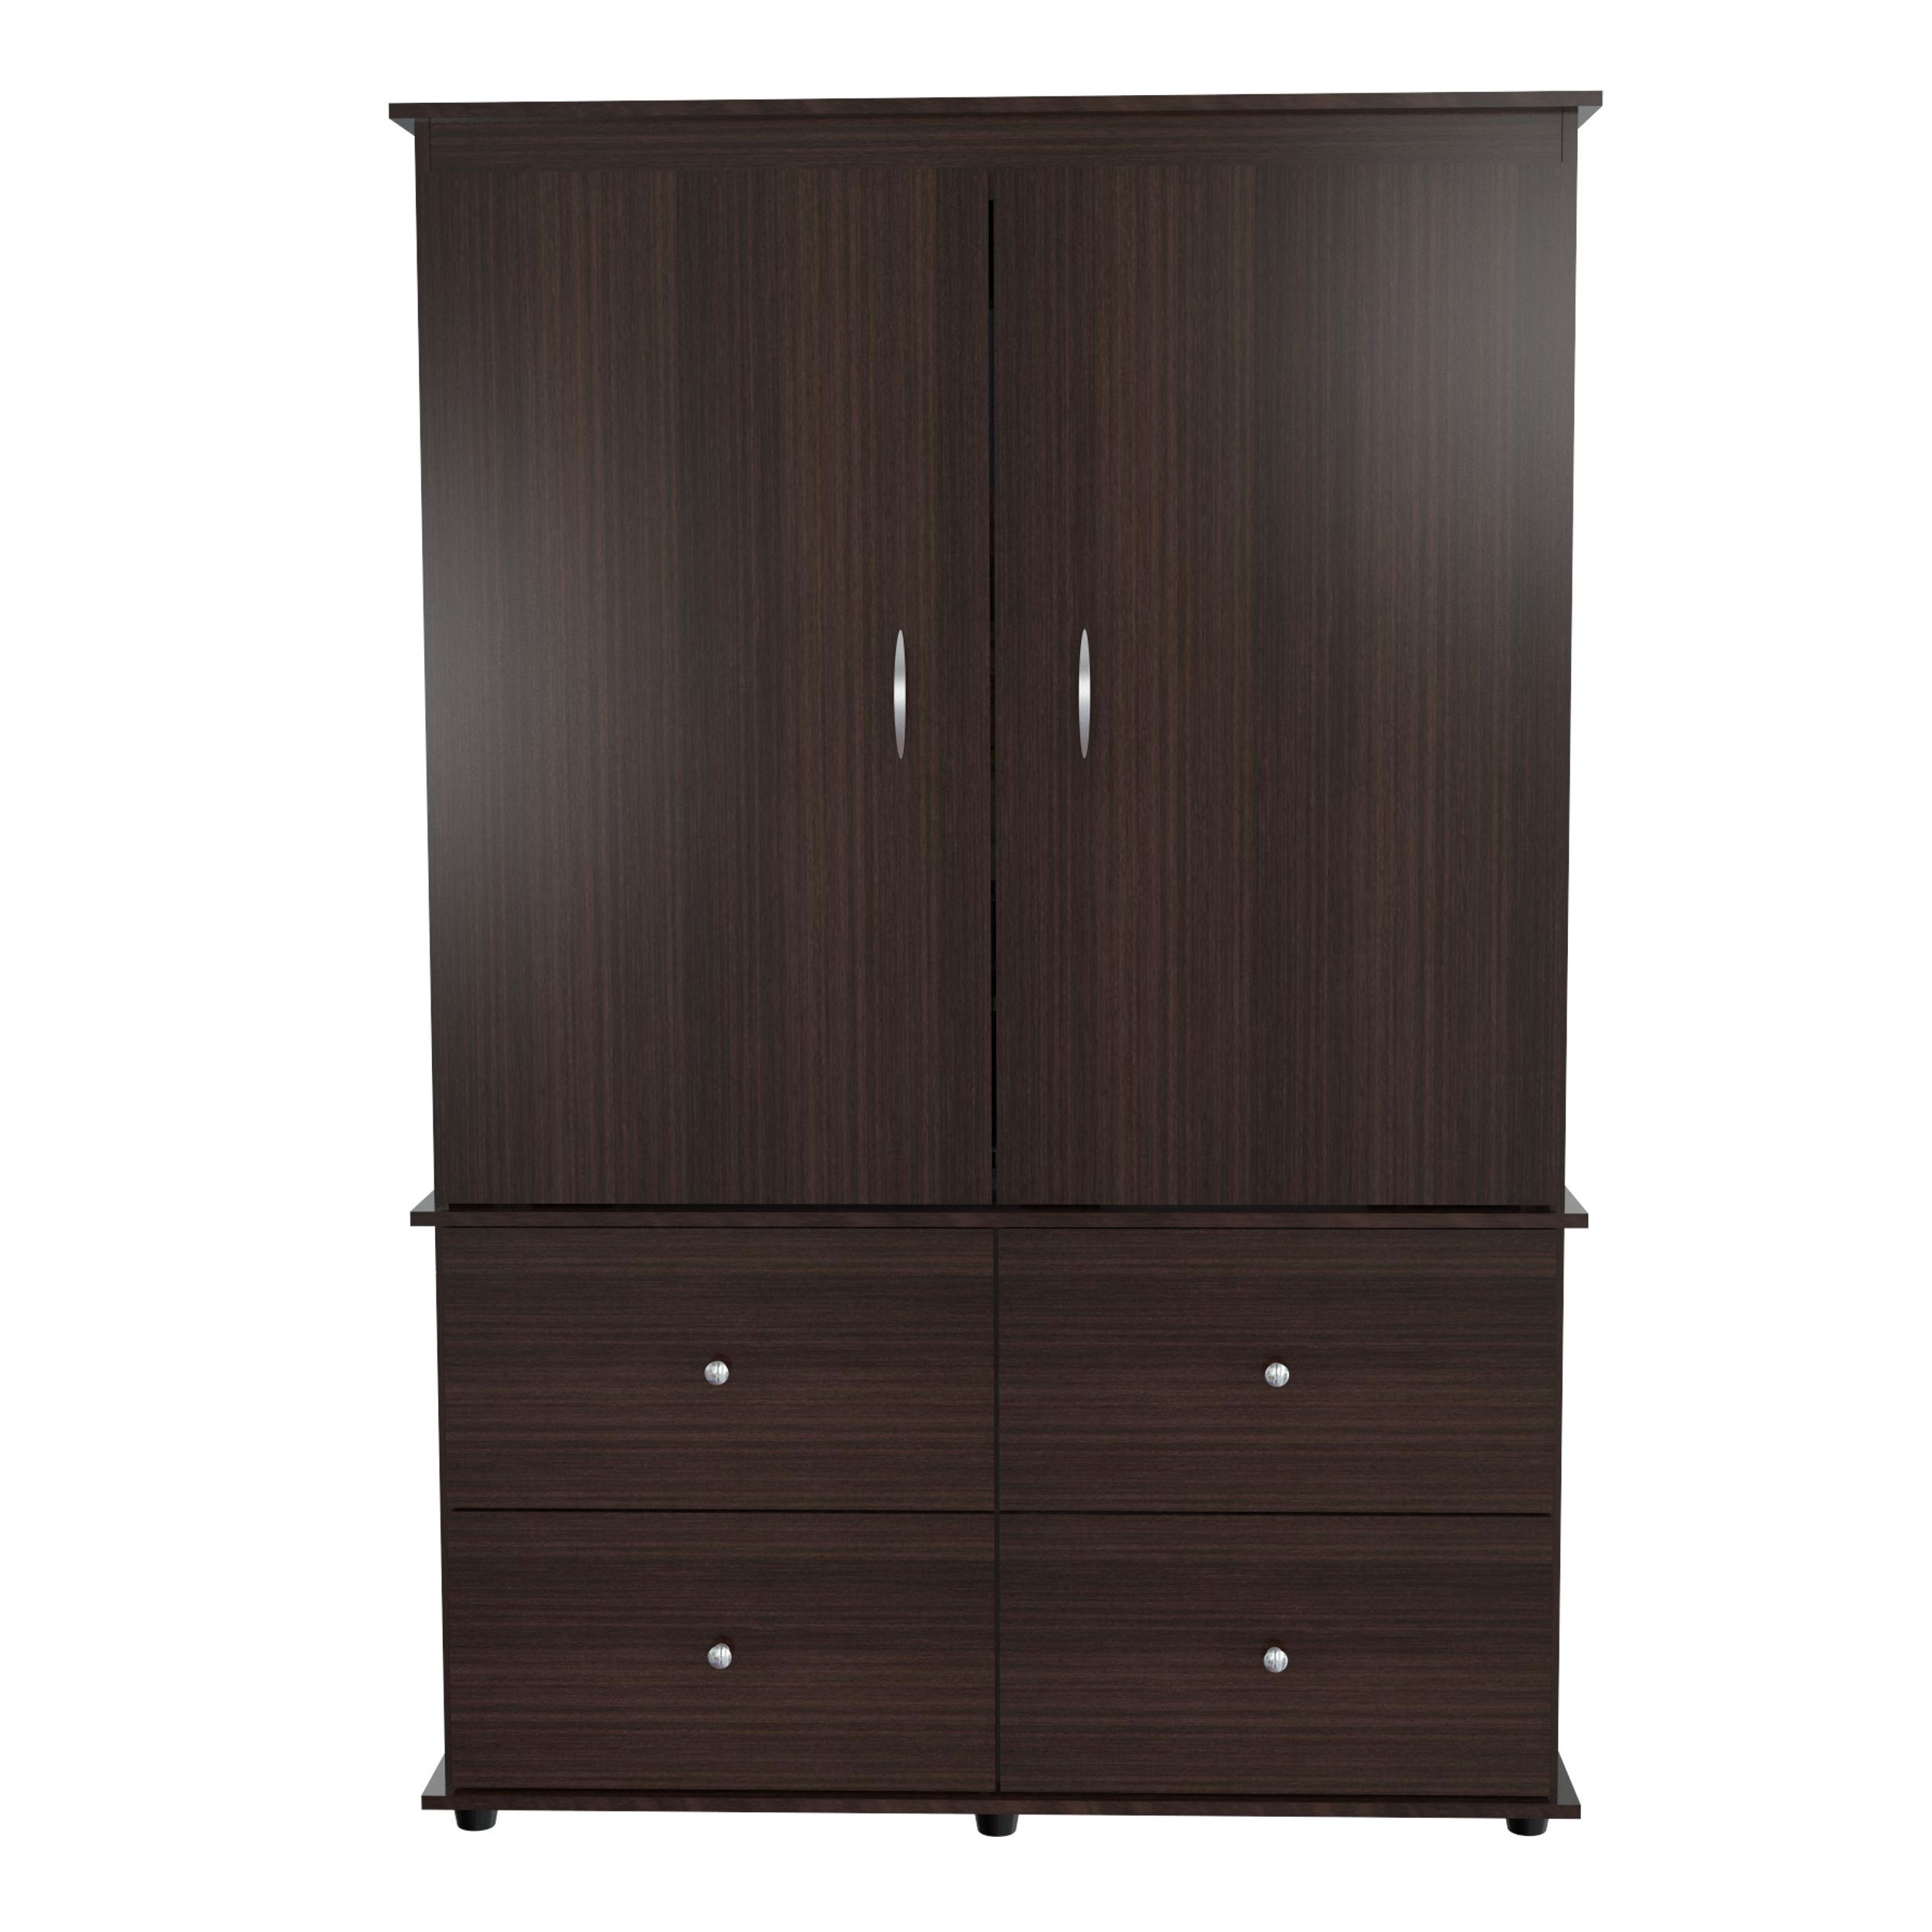 Home Depot Wood Wardrobes ~ Appealing armoire closet home depot roselawnlutheran